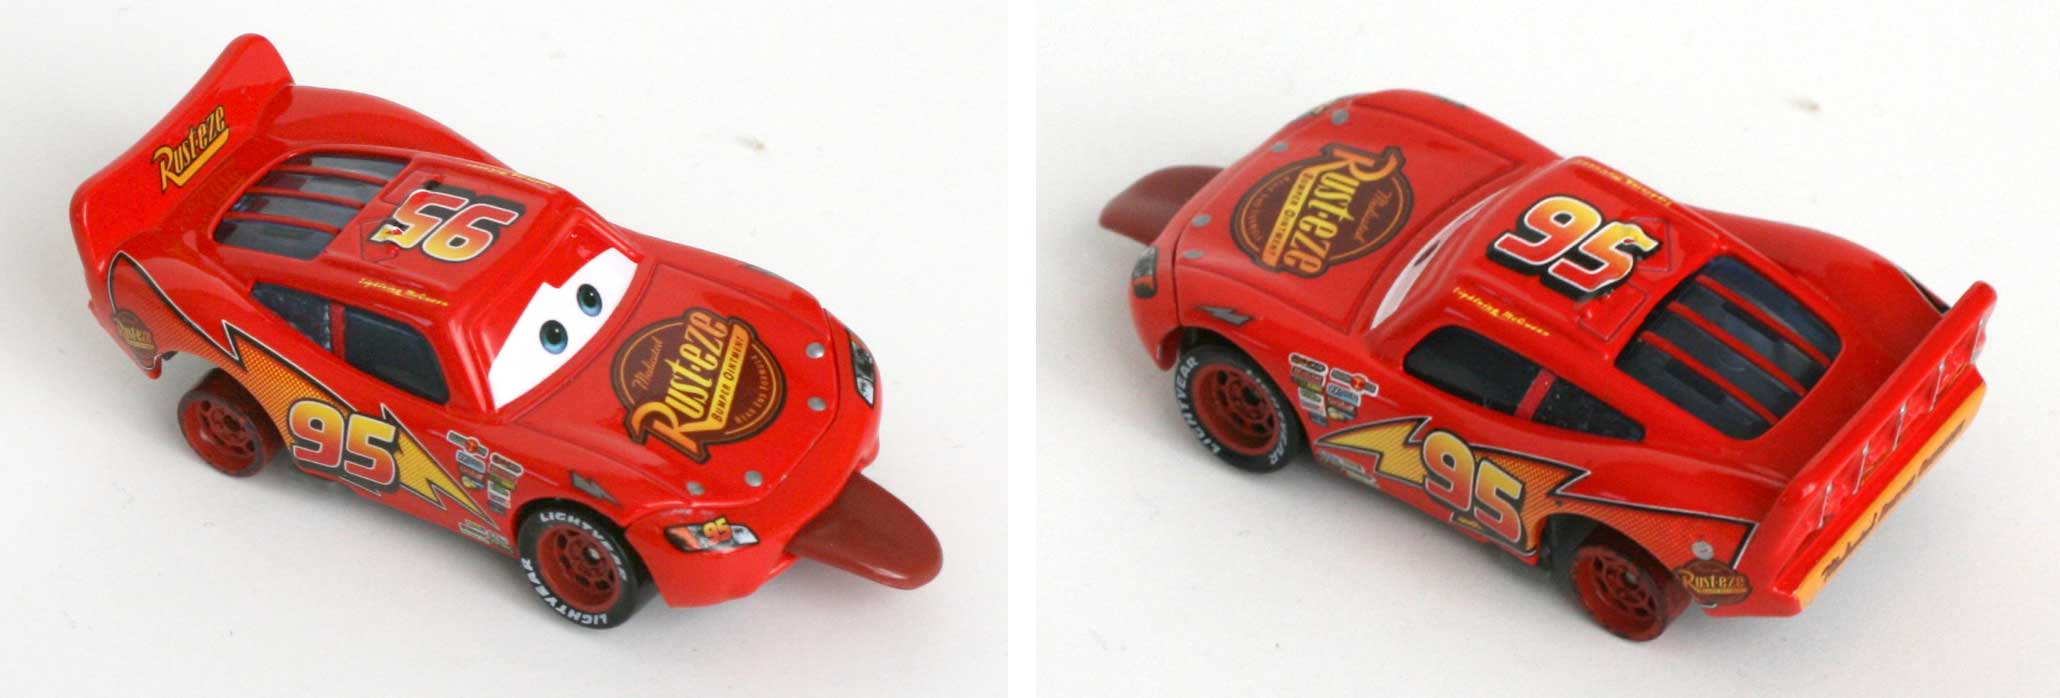 Mattel : Race O Rama - Flash McQueen tire la langue (2009)